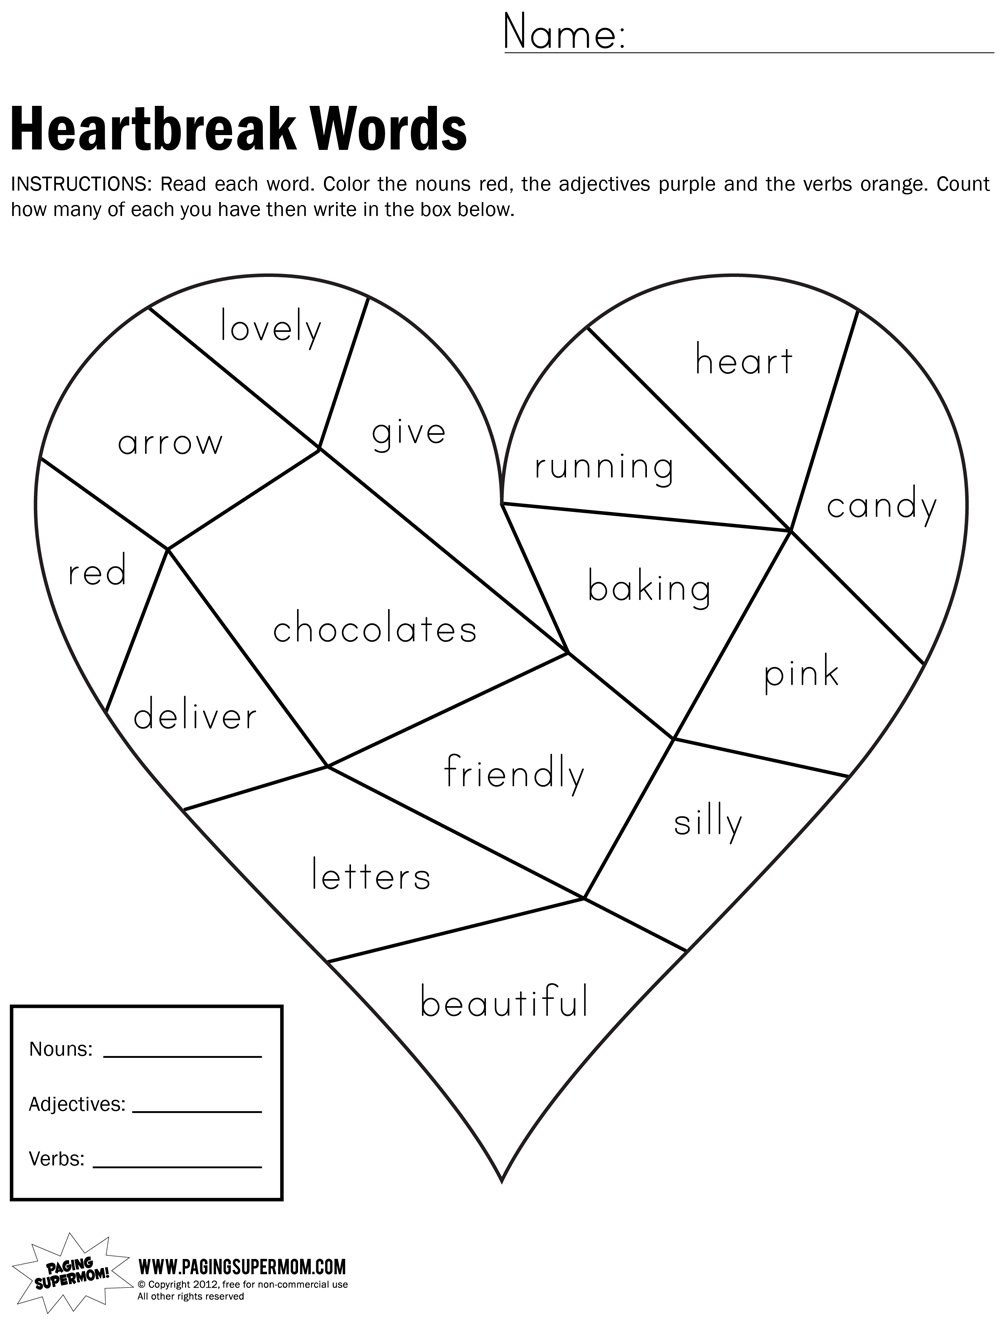 8 Best Images of First Grade Reading Worksheets Free